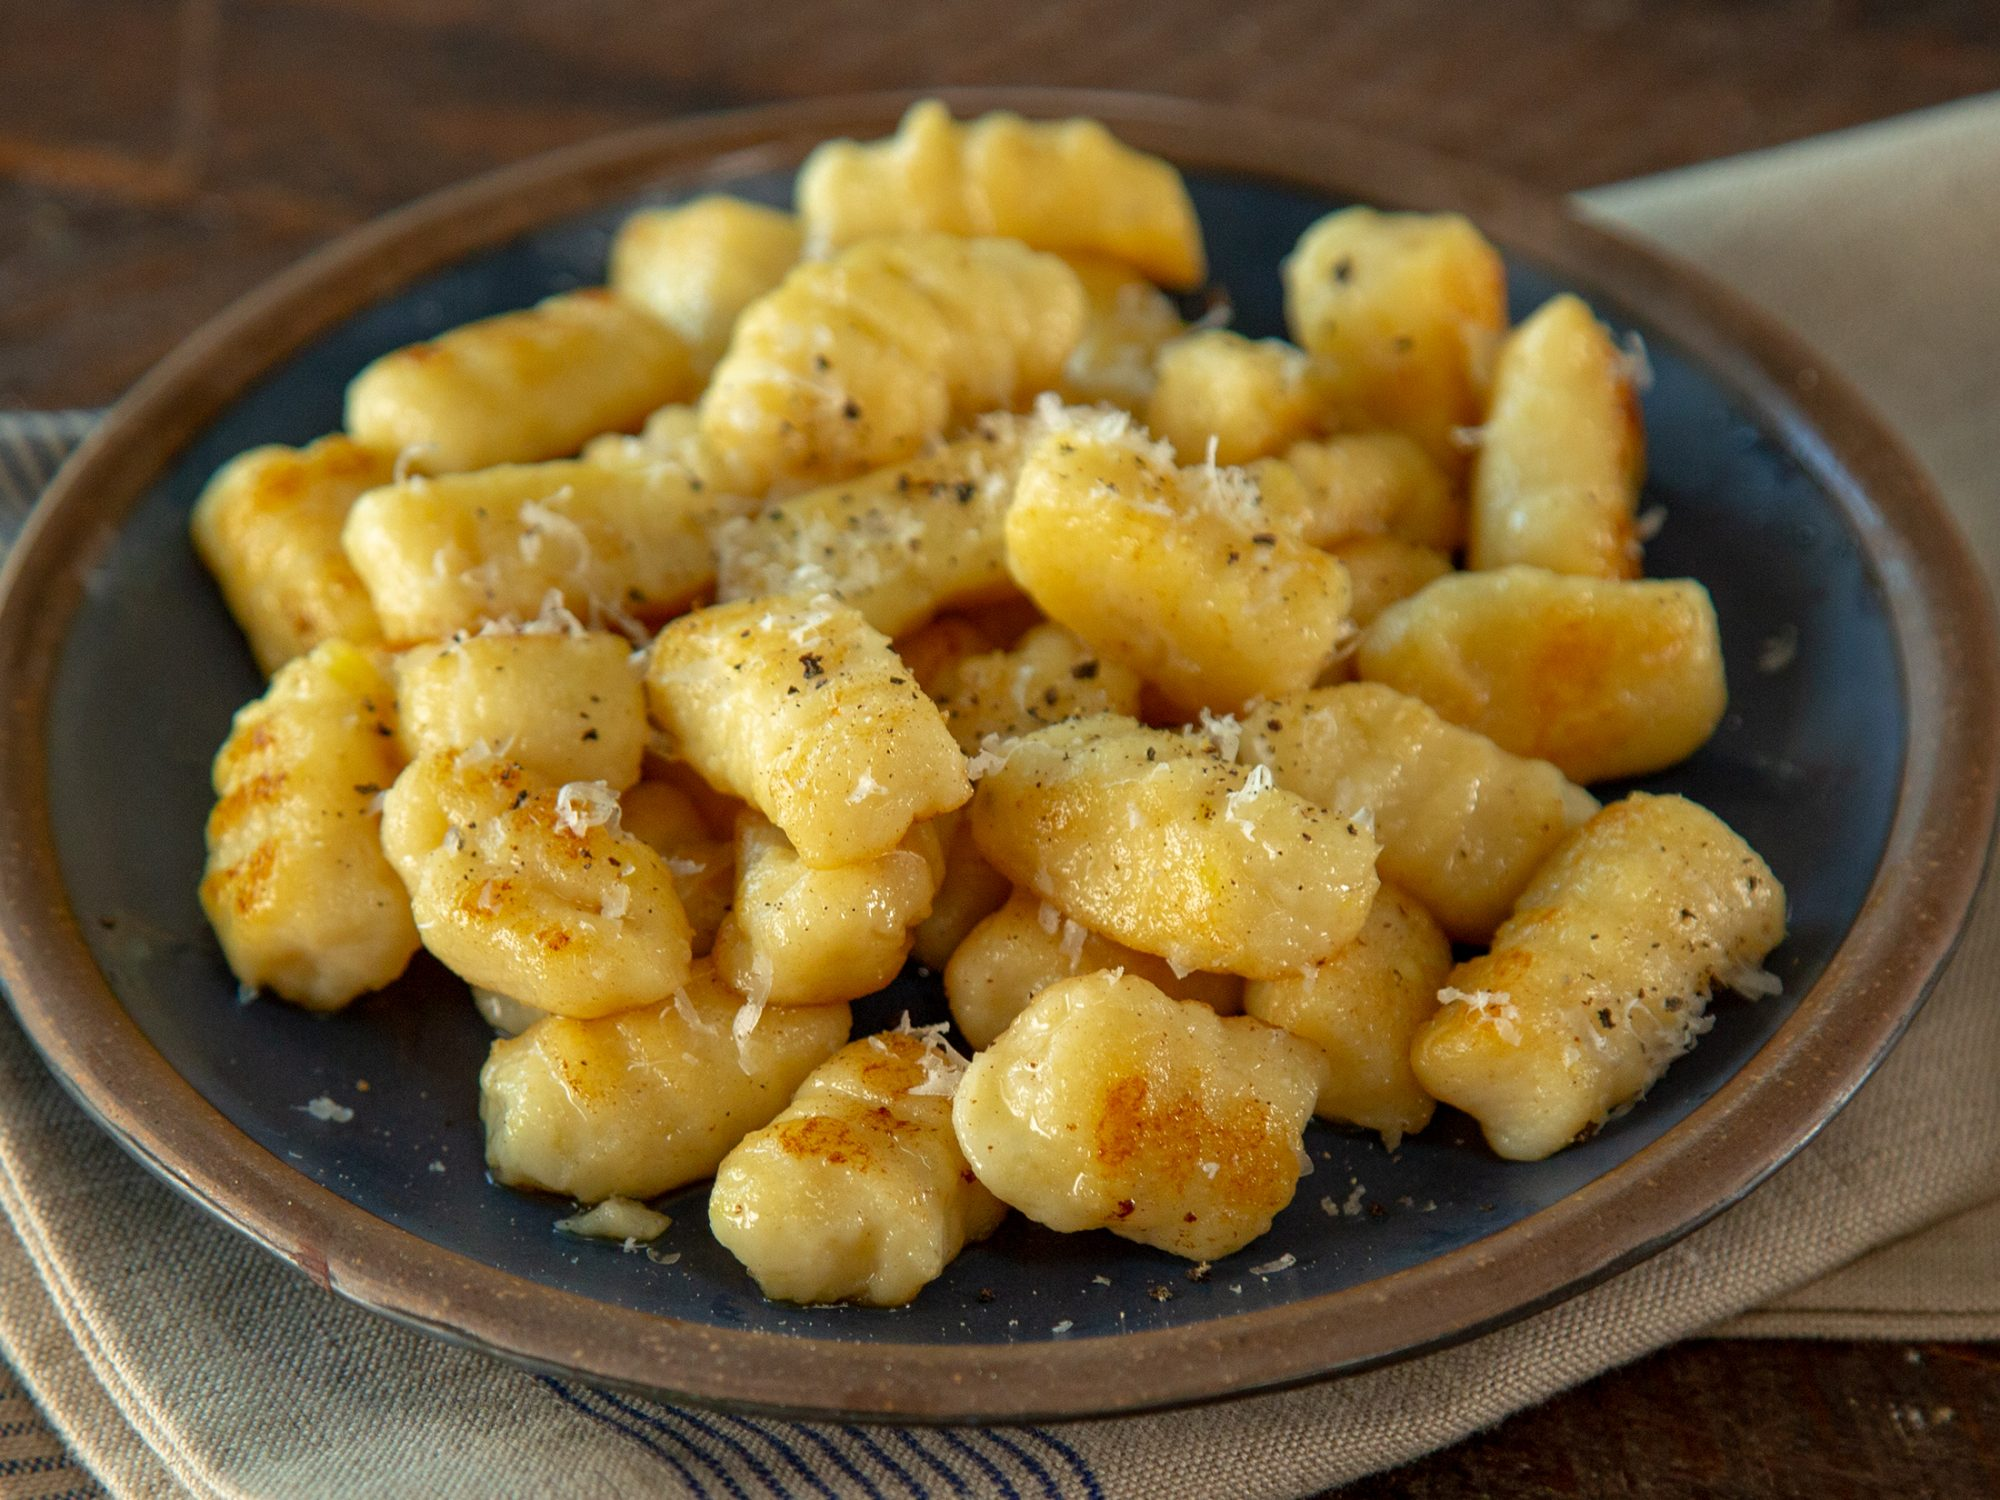 Leftover Mashed Potato Gnocchi